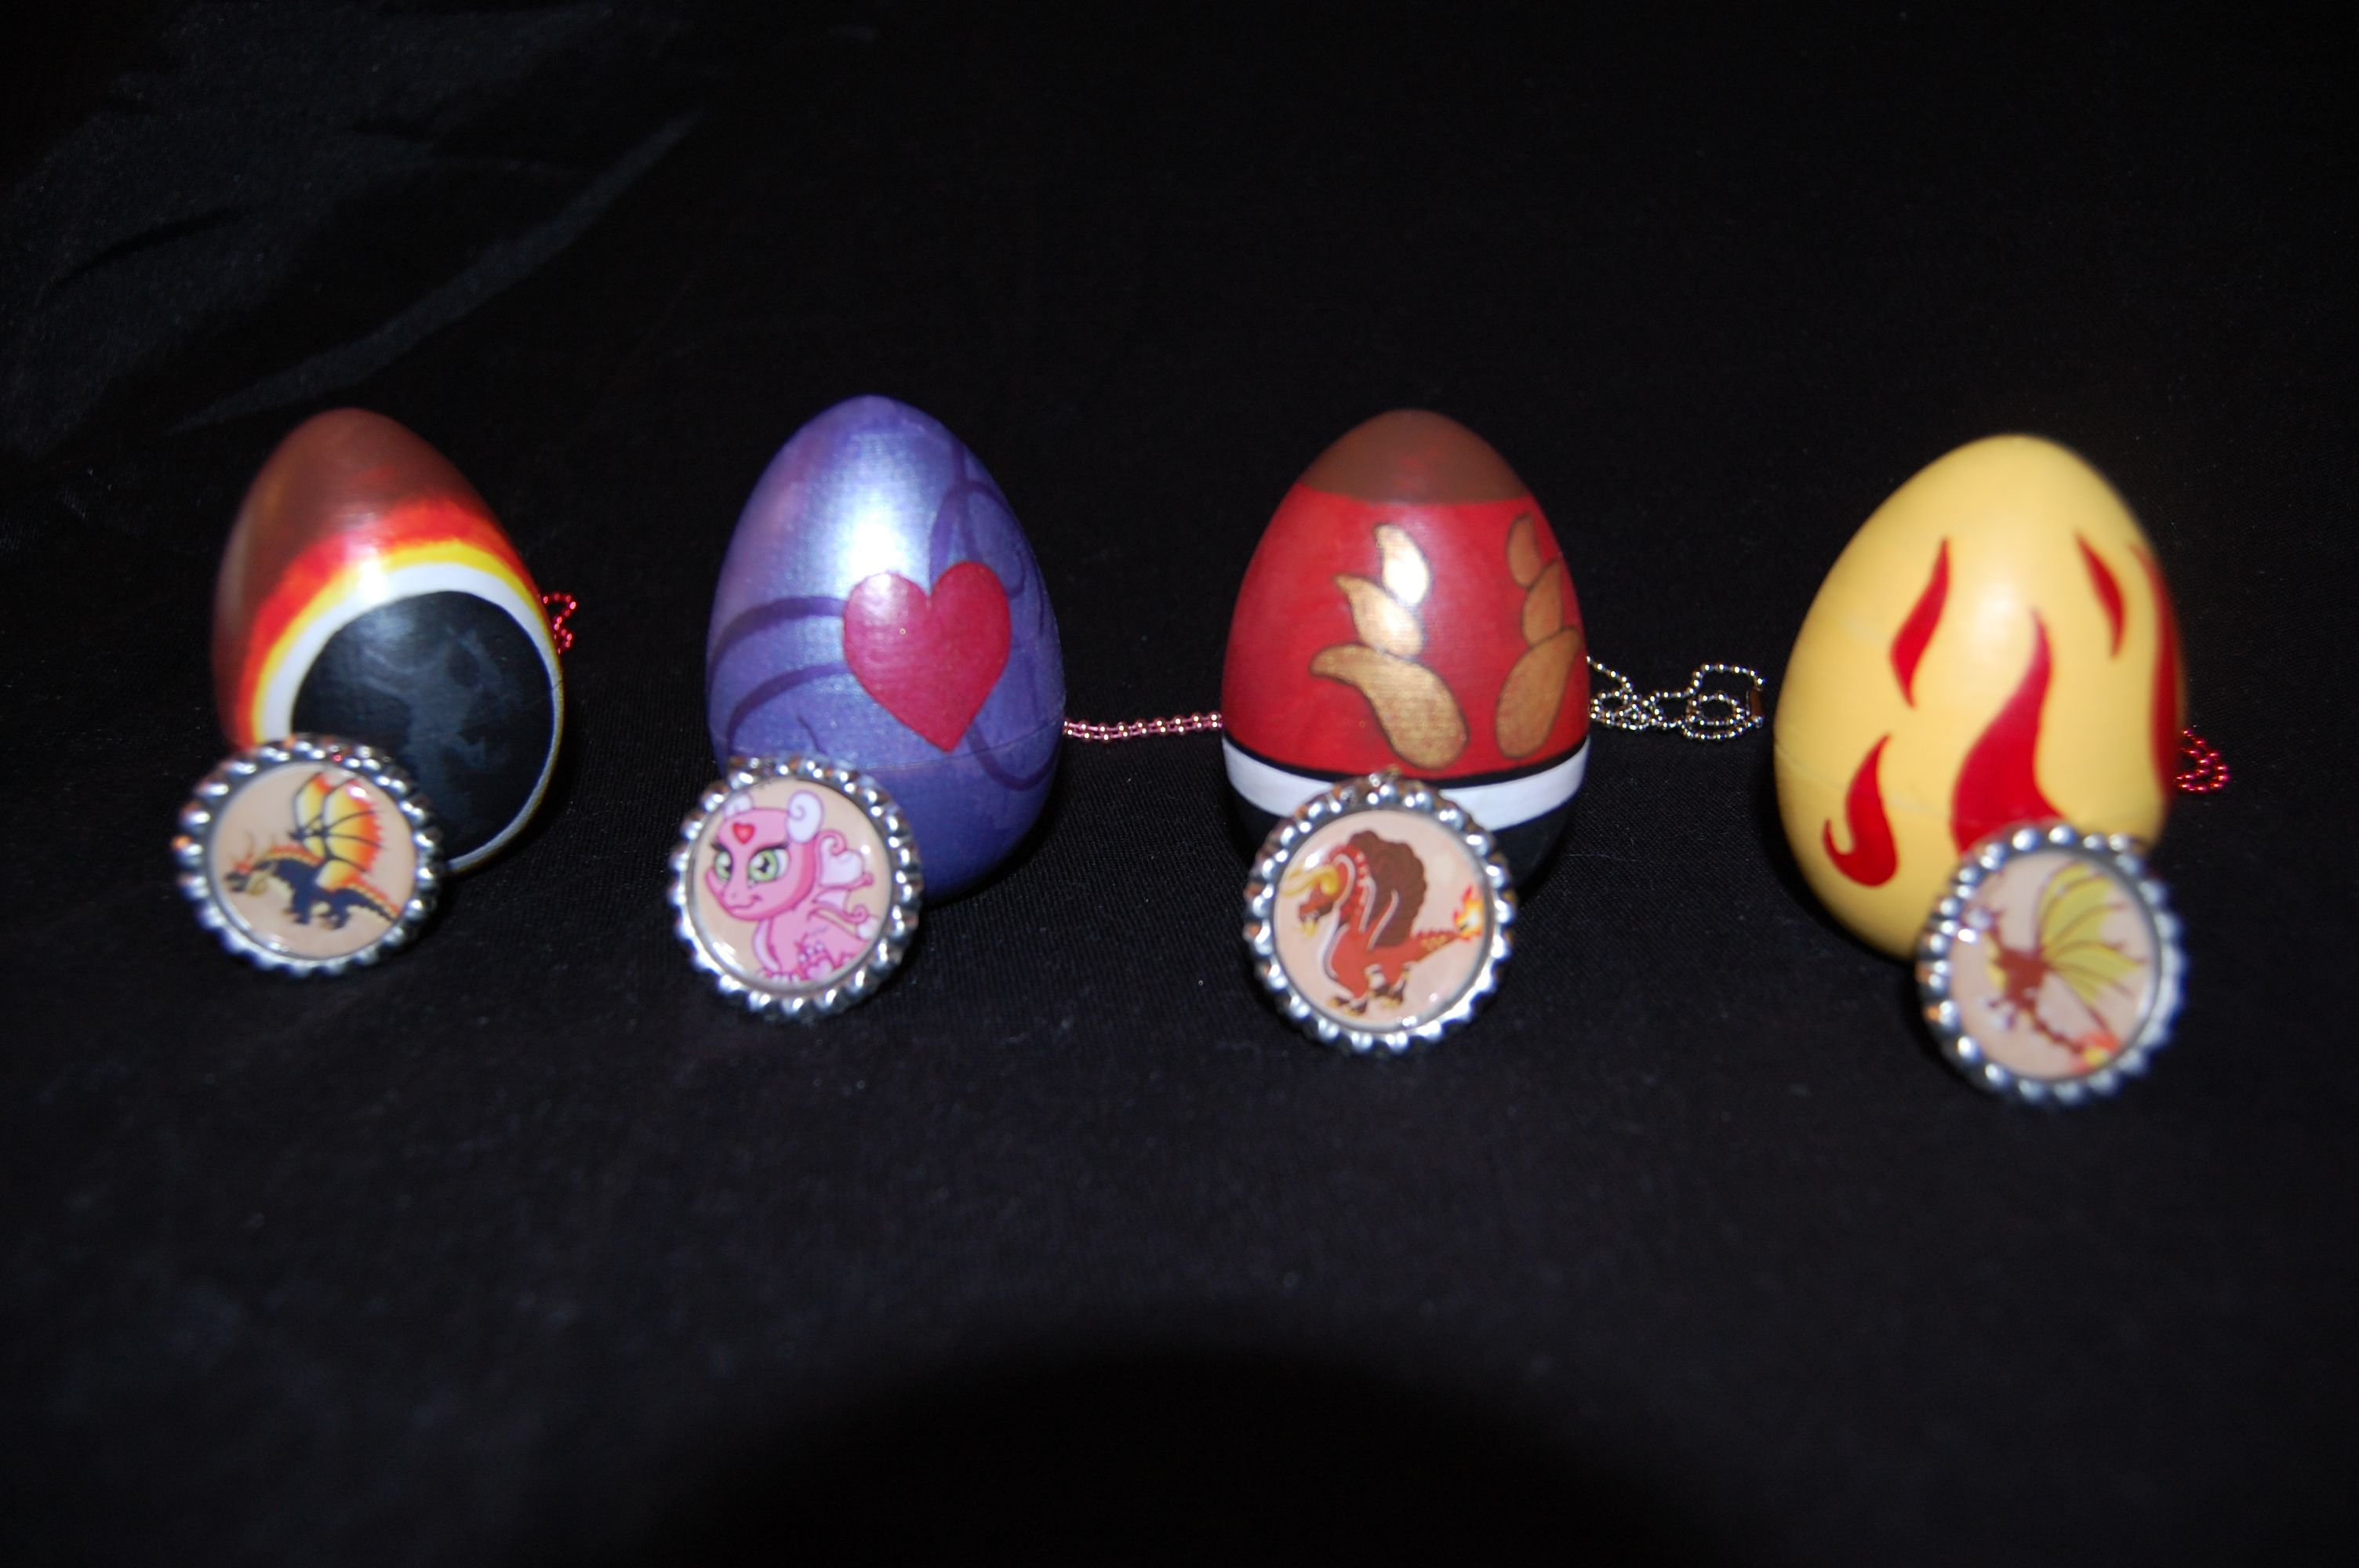 Dragonvale Birthday Party Favors Handpainted Eggs That Open And Bottlecap Necklaces Birthday Party Favors Stuffed Toys Patterns Birthday Parties